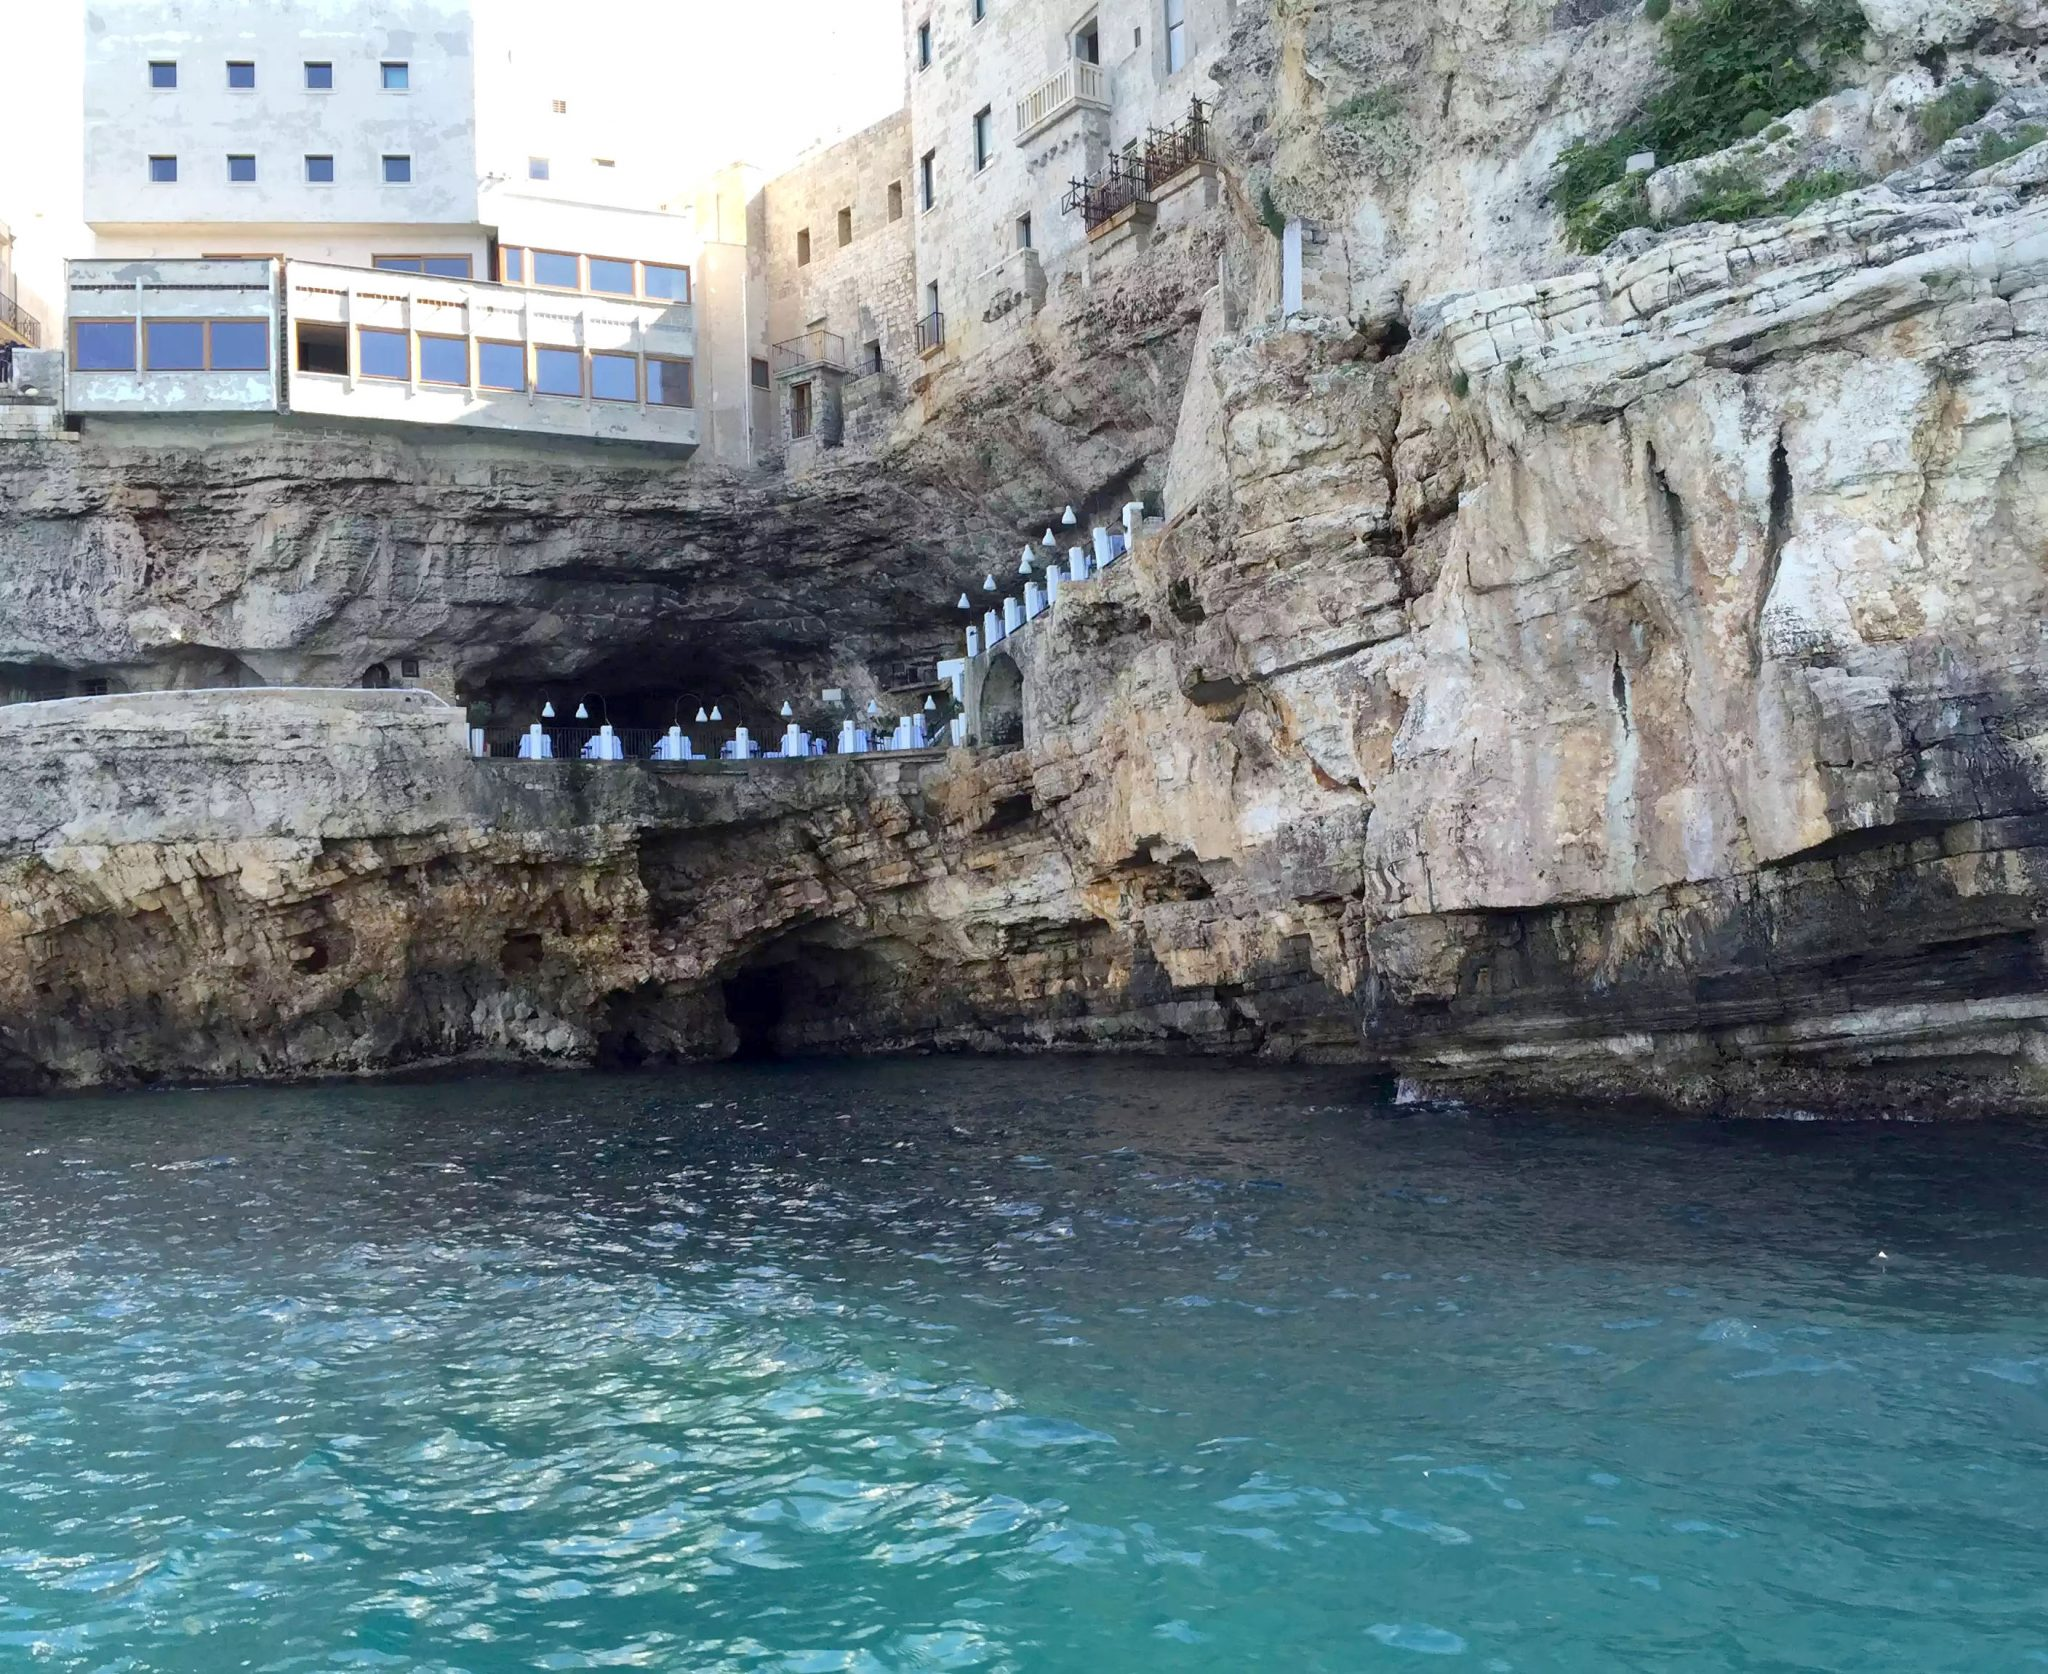 Polignano A Mare Puglia Italy Grotta Palazzese lunch Birthday Princess cave Restaurant View Boat Trip